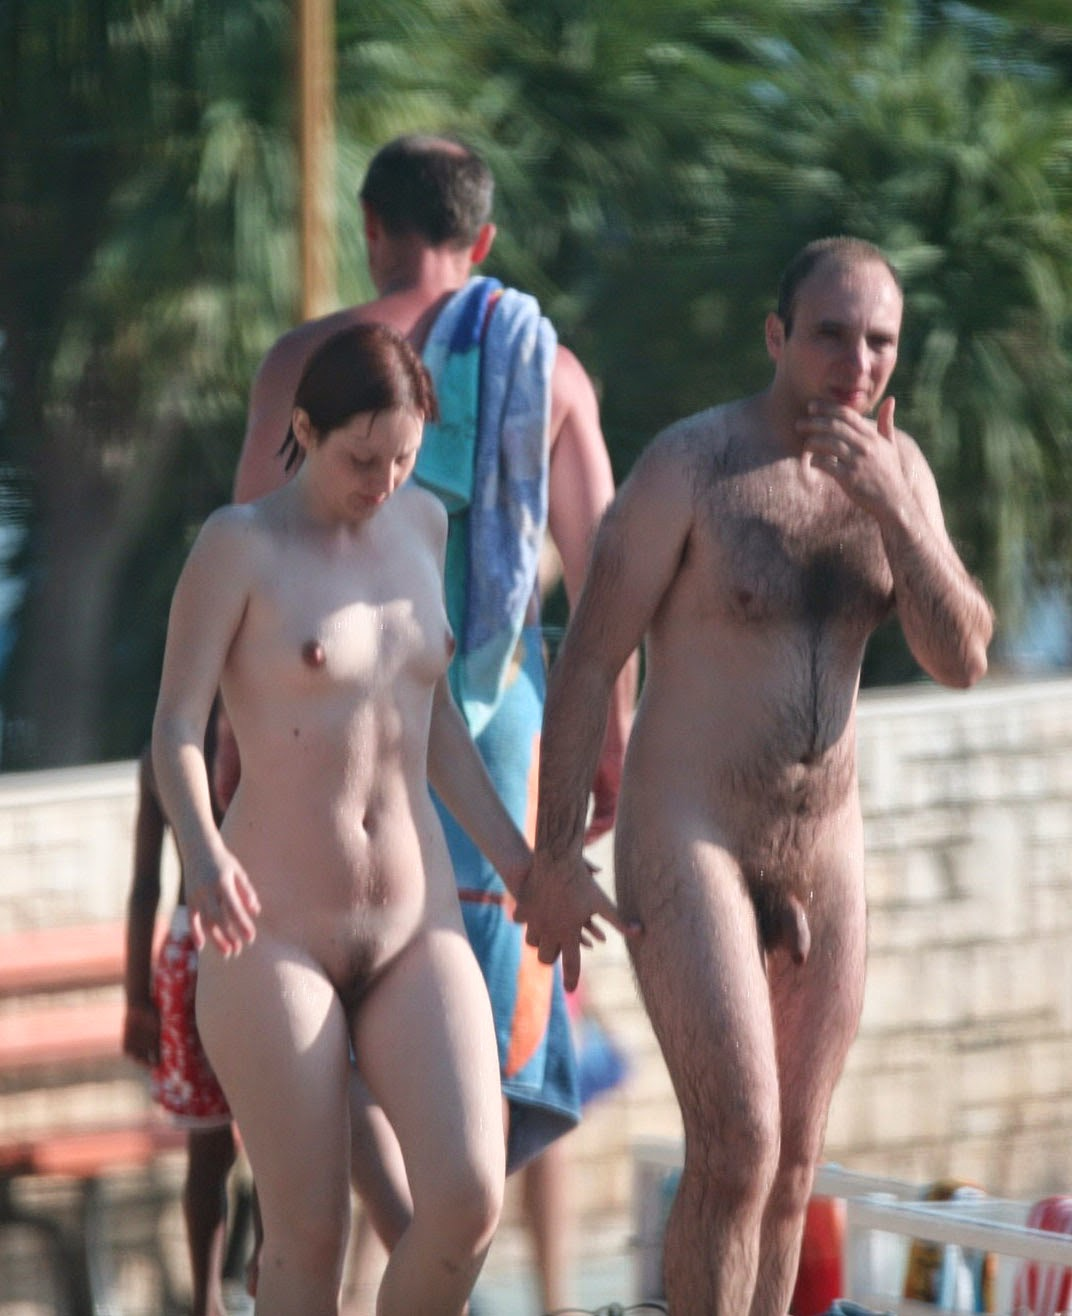 Nudism and Naturism Family Photos and Videos